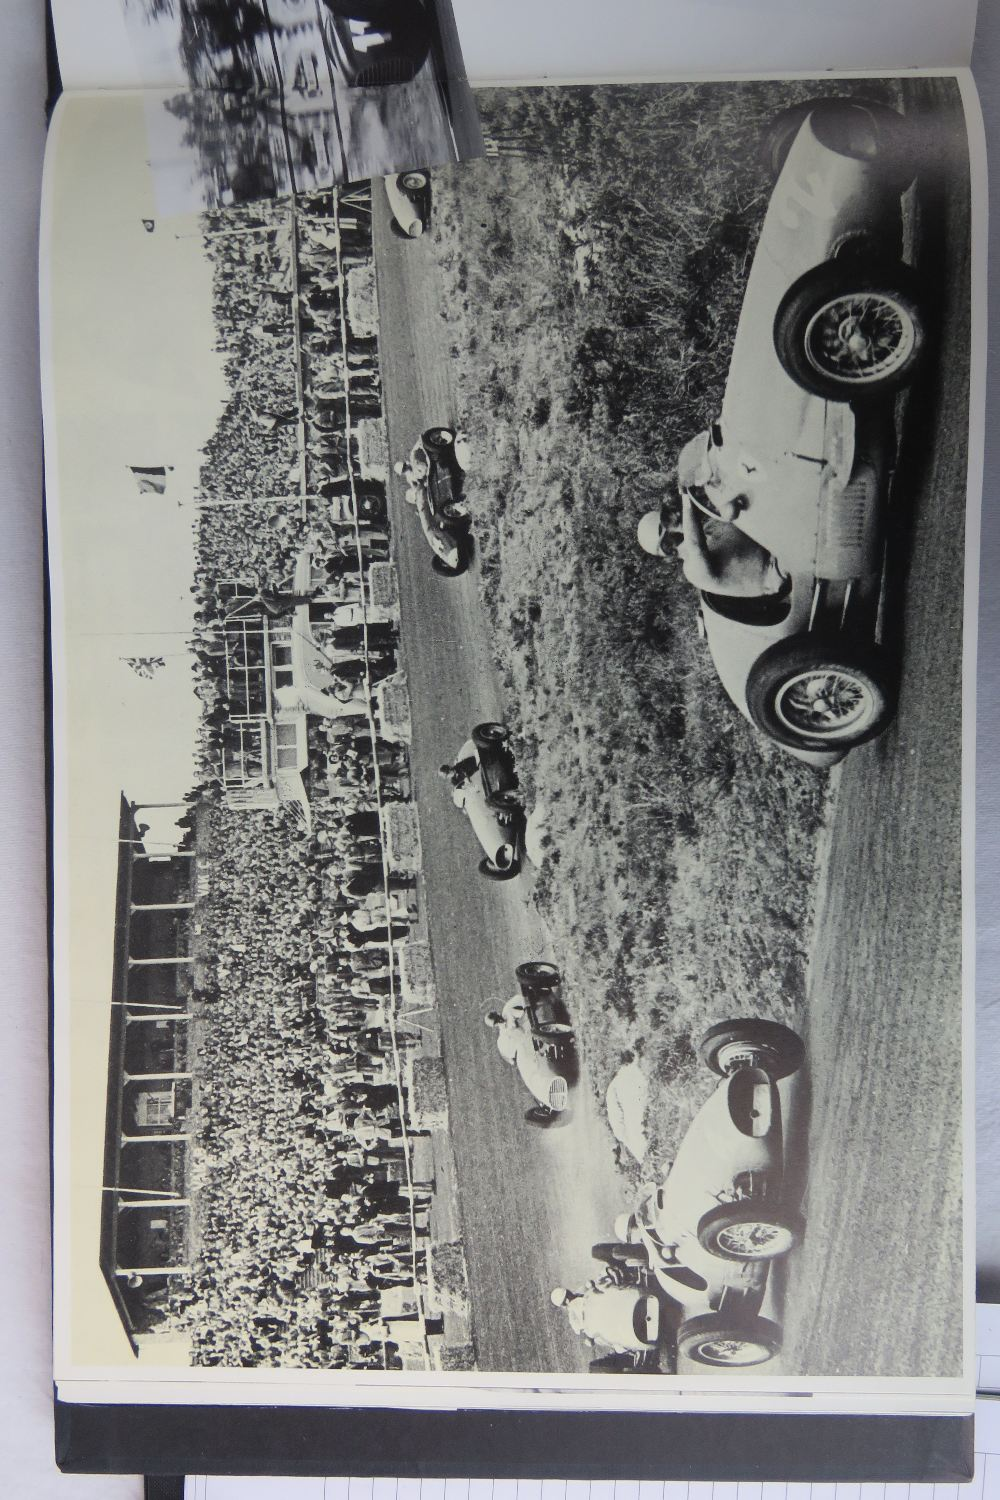 Lot 31 - The Great Encylopeadia of Formula 1 1950